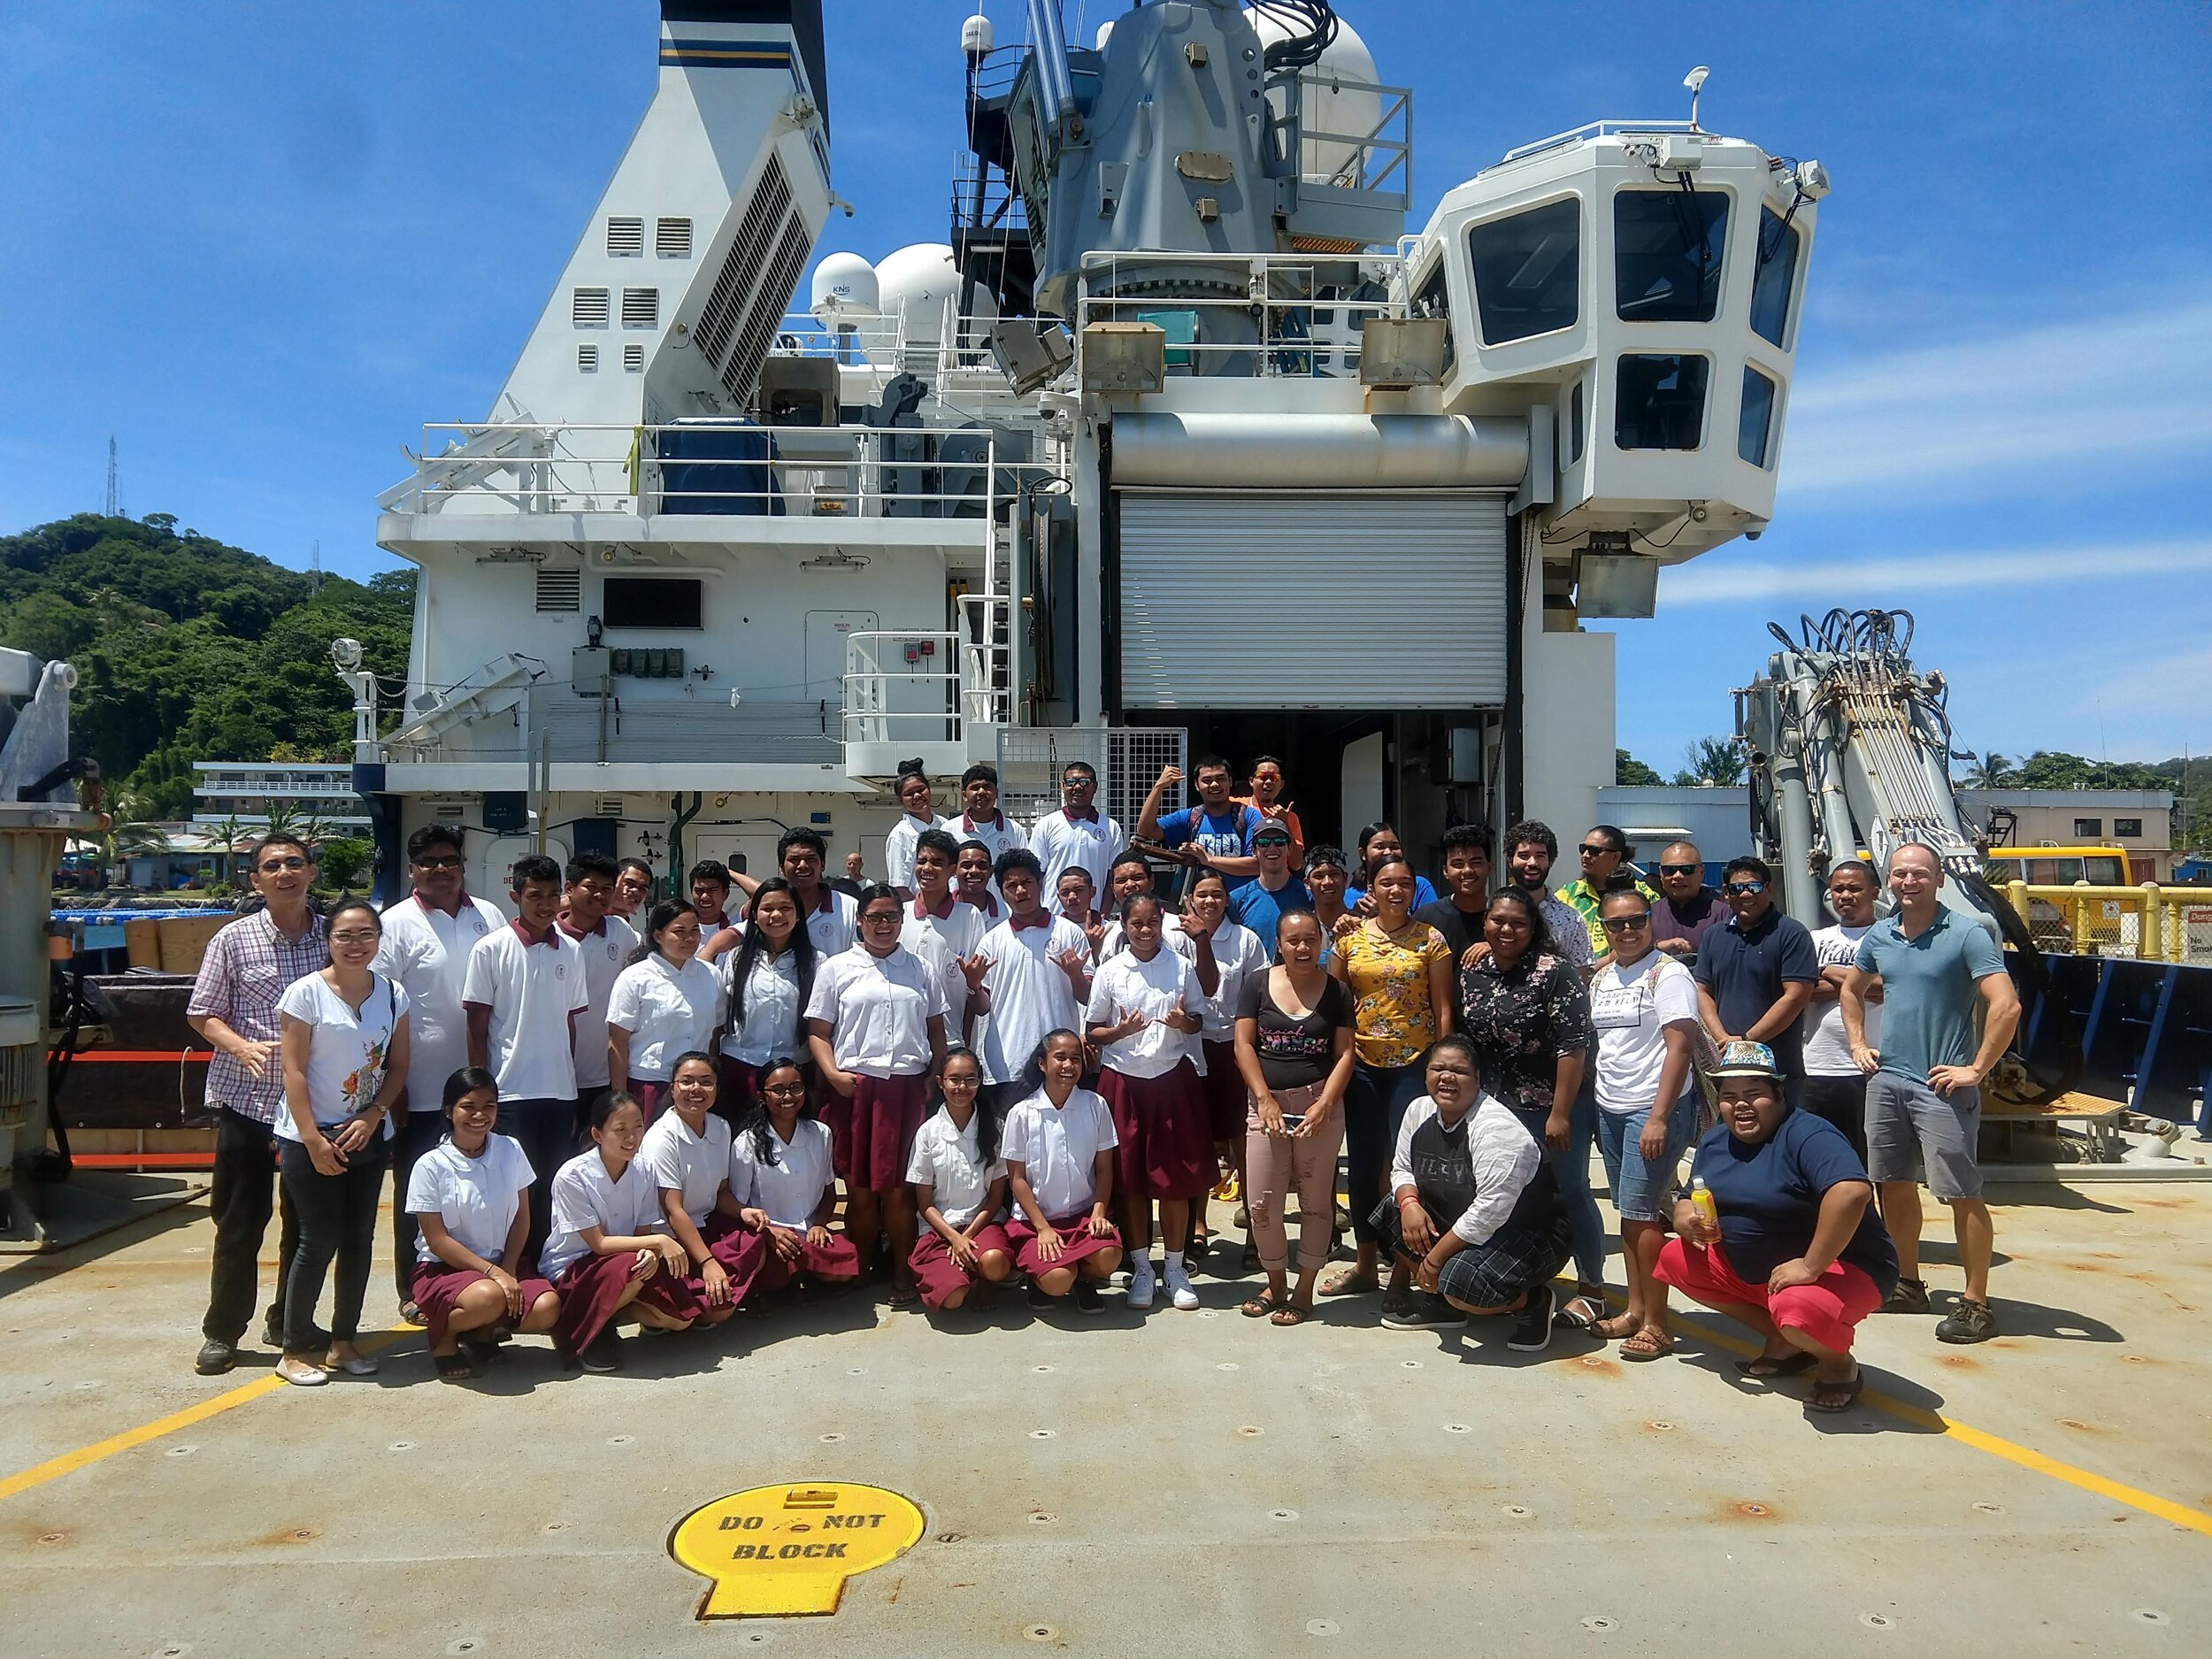 Visitors on the ship in Palau together with MOD scientists Jesse Cusack and Gunnar Voet.